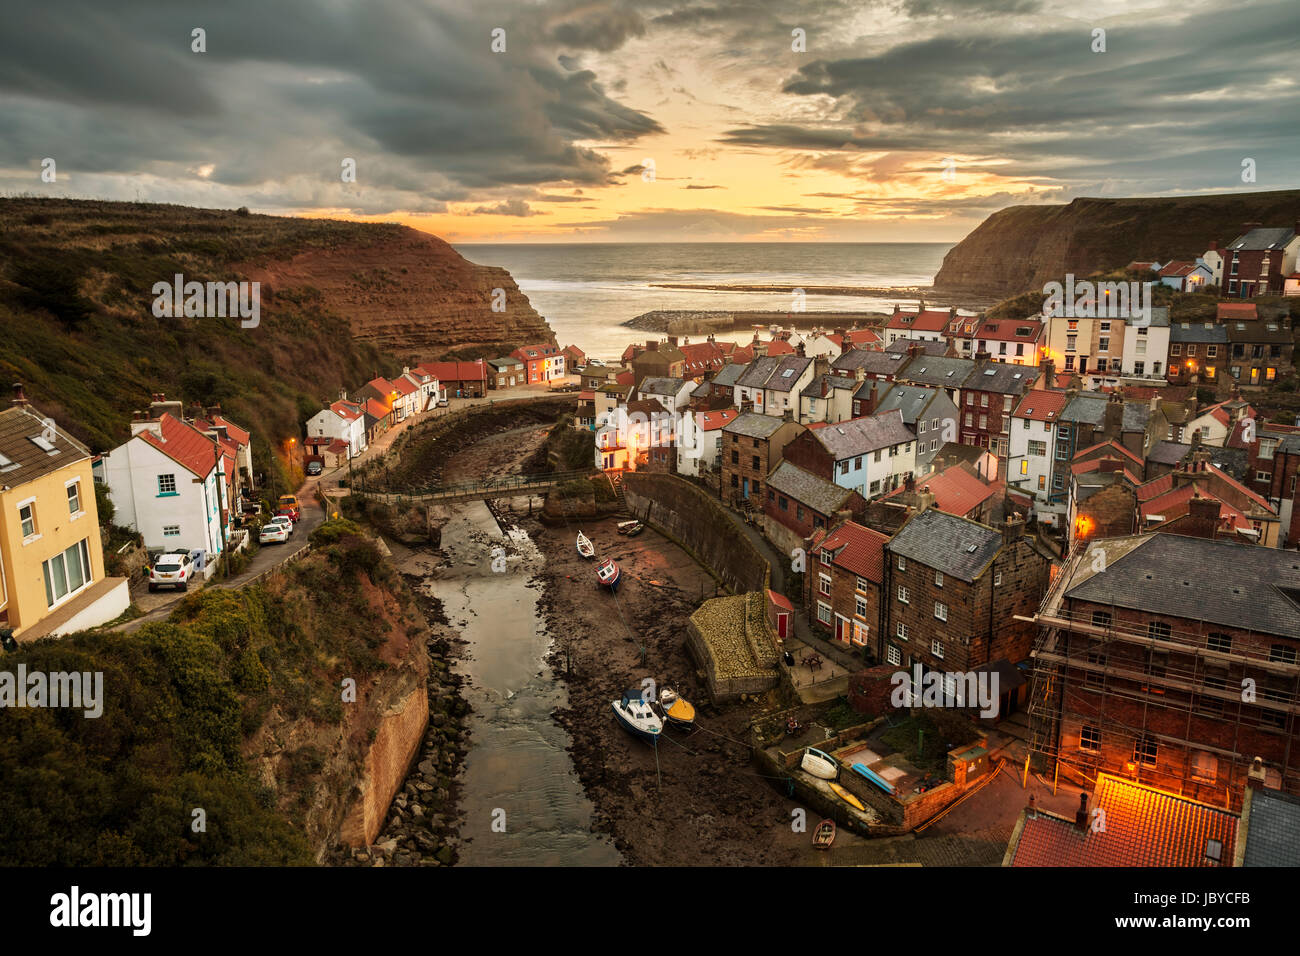 Dawn as the sun begins to rise over the beautiful fishing village of Staithes, nestled into the cliffs of the North - Stock Image